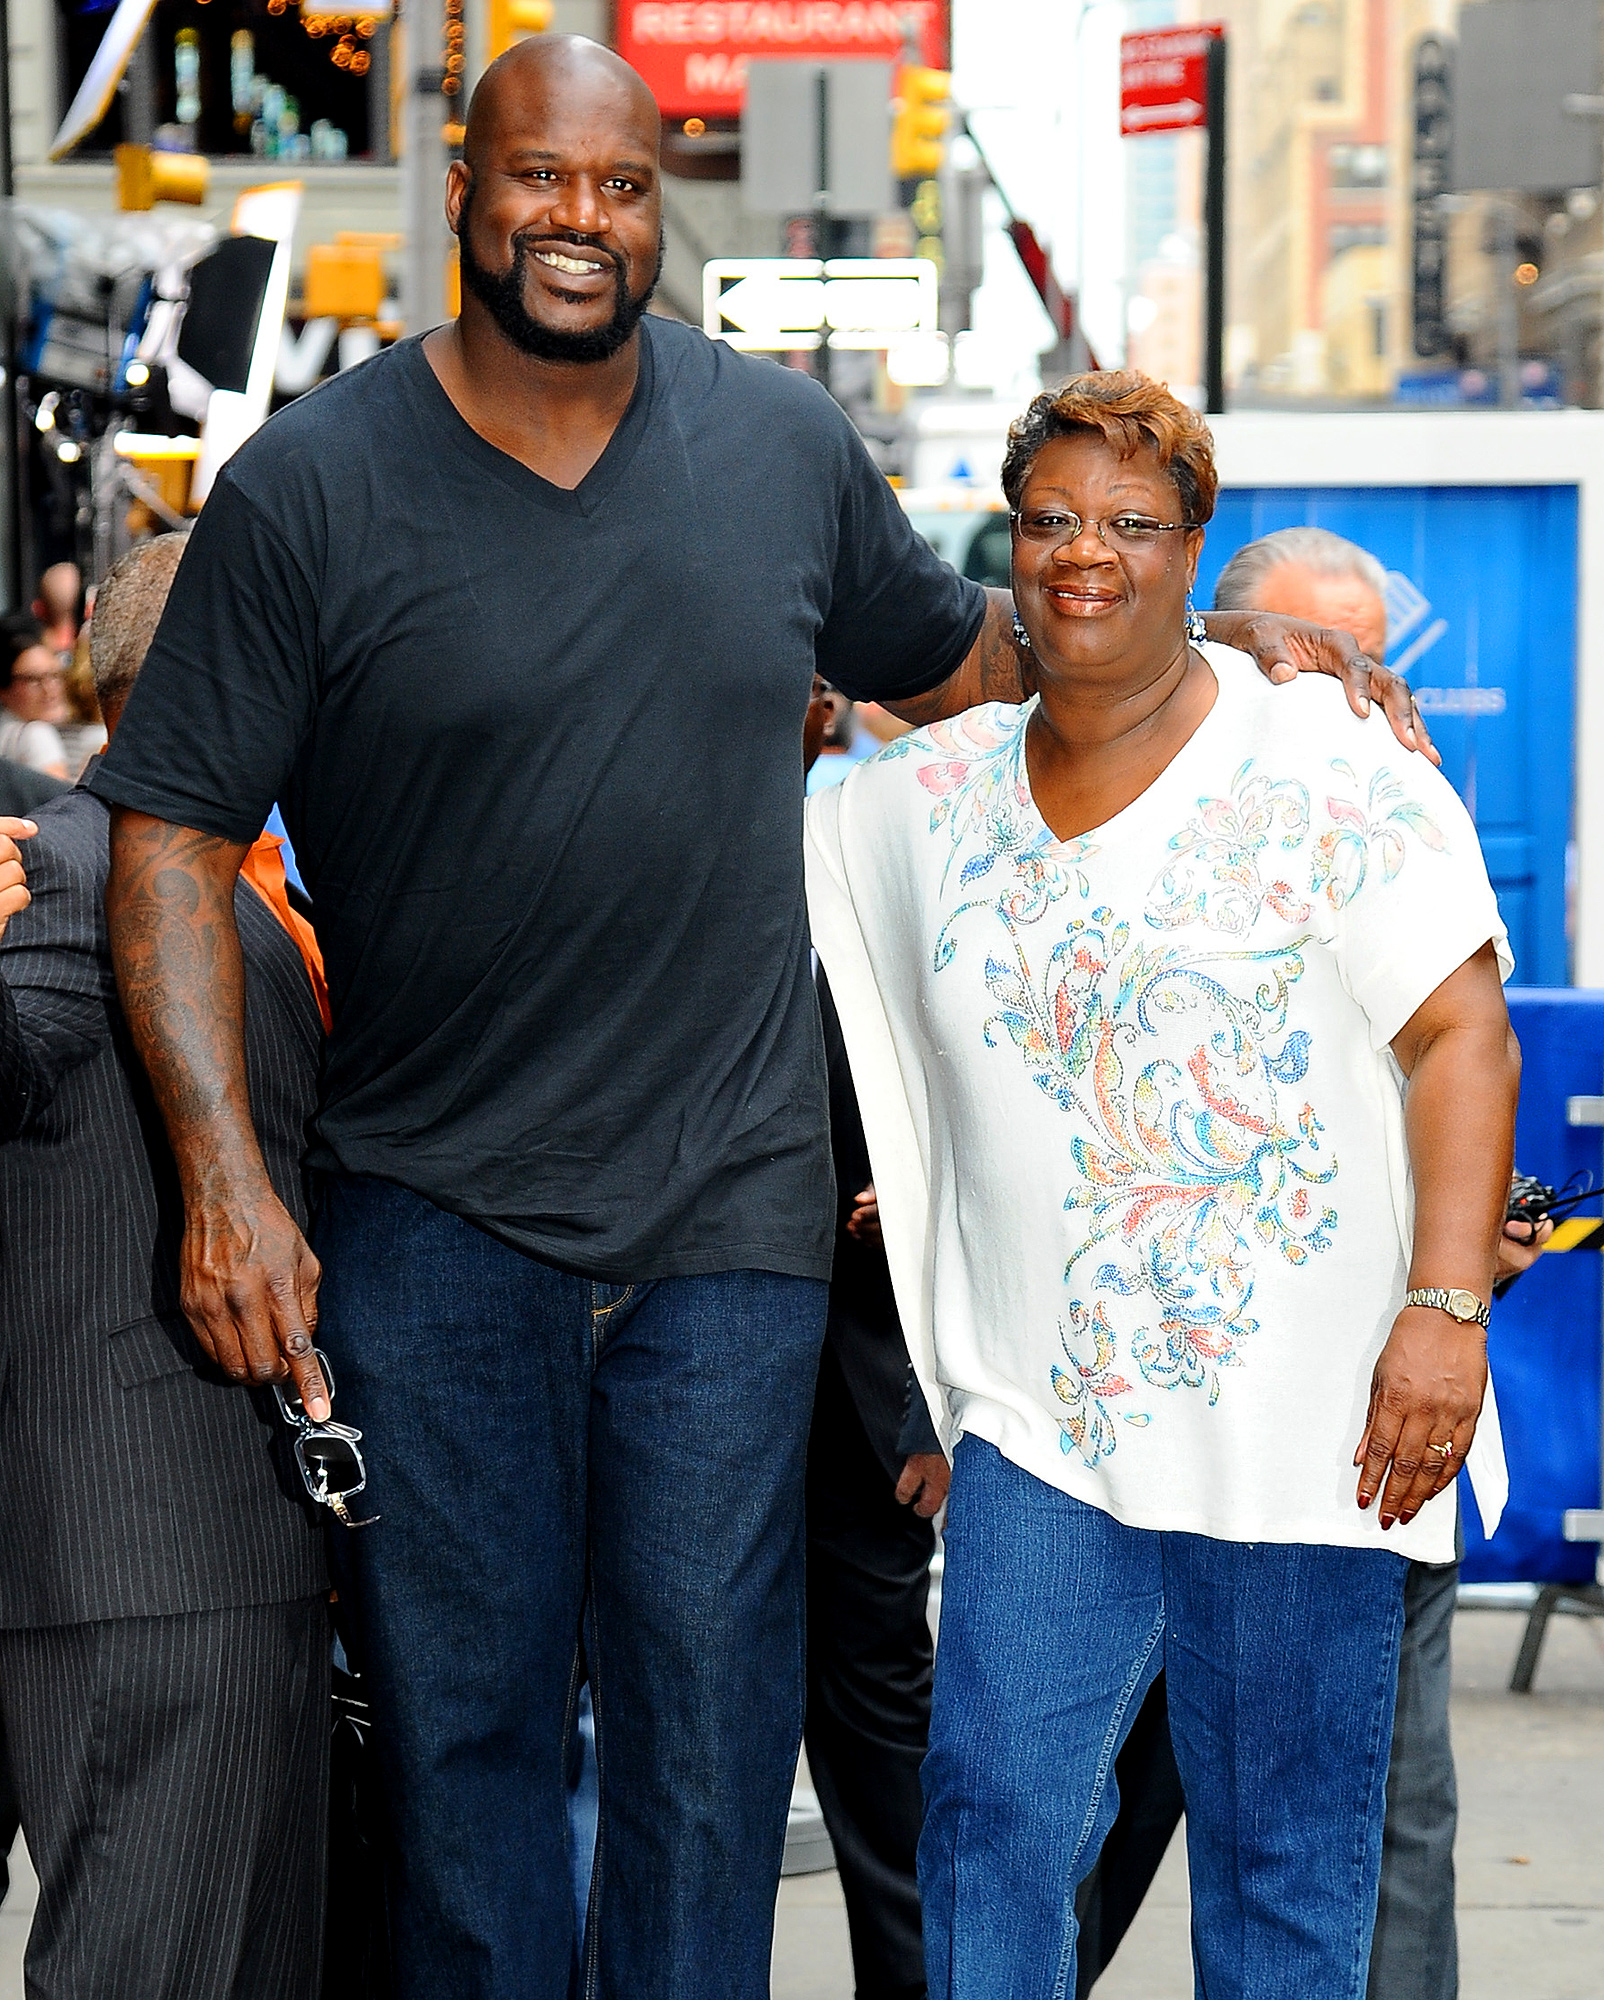 Shaquille O'Neal and his mother Lucille O'Neal